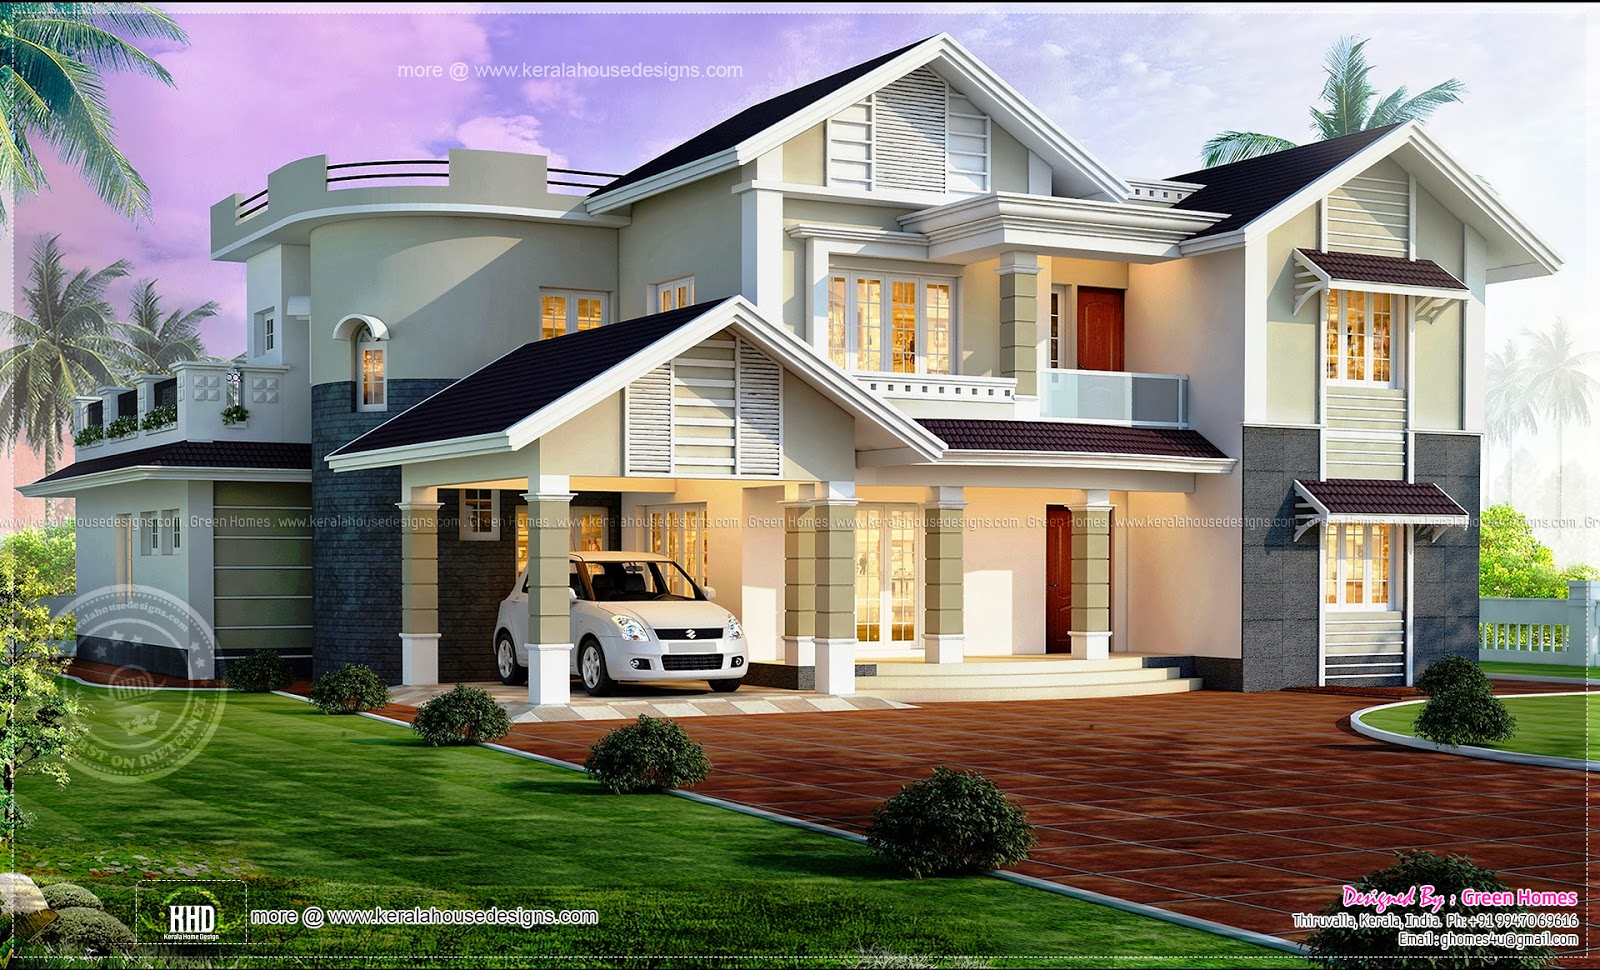 Beautiful 4 bedroom house exterior elevation kerala home for Www kerala house designs com